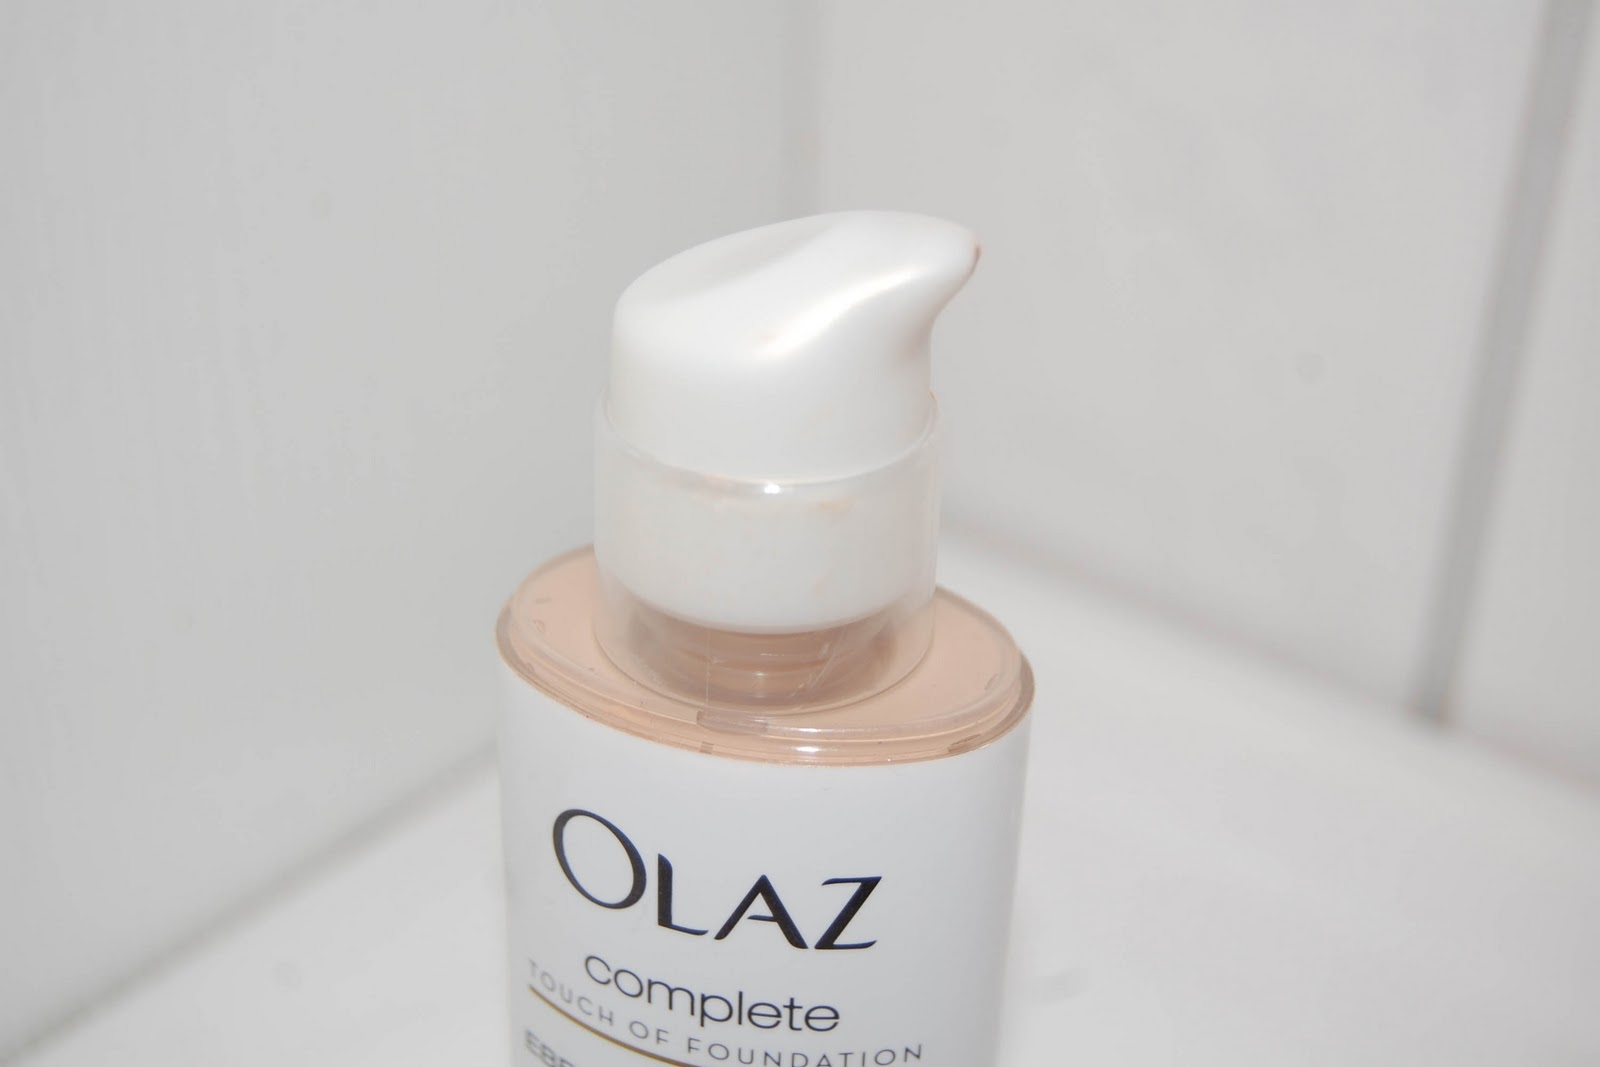 M Is For Michèle Review Oil Of Olaz Complete Touch Of